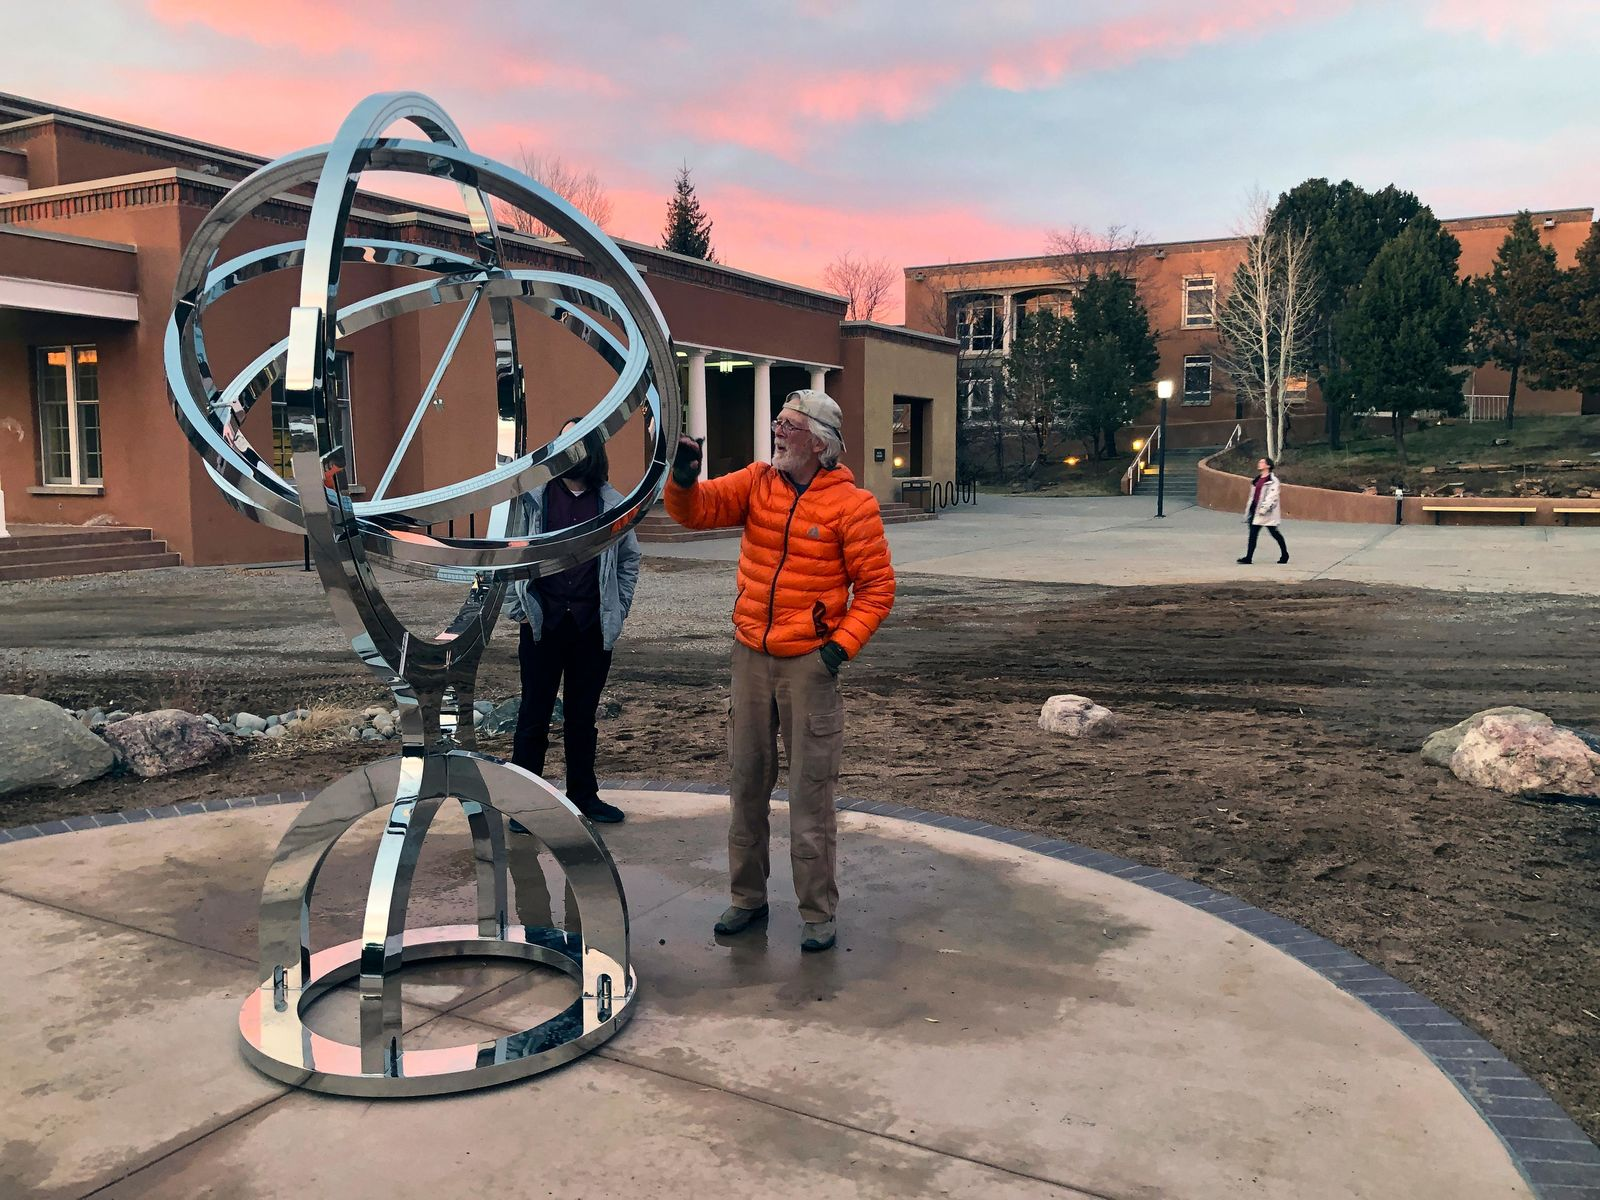 In this Dec. 11, 2019 photo Bill Donahue, center, a retired teacher and director of laboratories at St. John's College, uses an armillary sphere to track planetary rotations and explore the history of astronomy in Santa Fe, N.M. The unique precision-steel replica of an instrument created by Danish astonomer Tycho Brahe was commissioned by graduates of the college where students trace the evolution of math and science from early civilizations. (AP Photo/Morgan Lee)